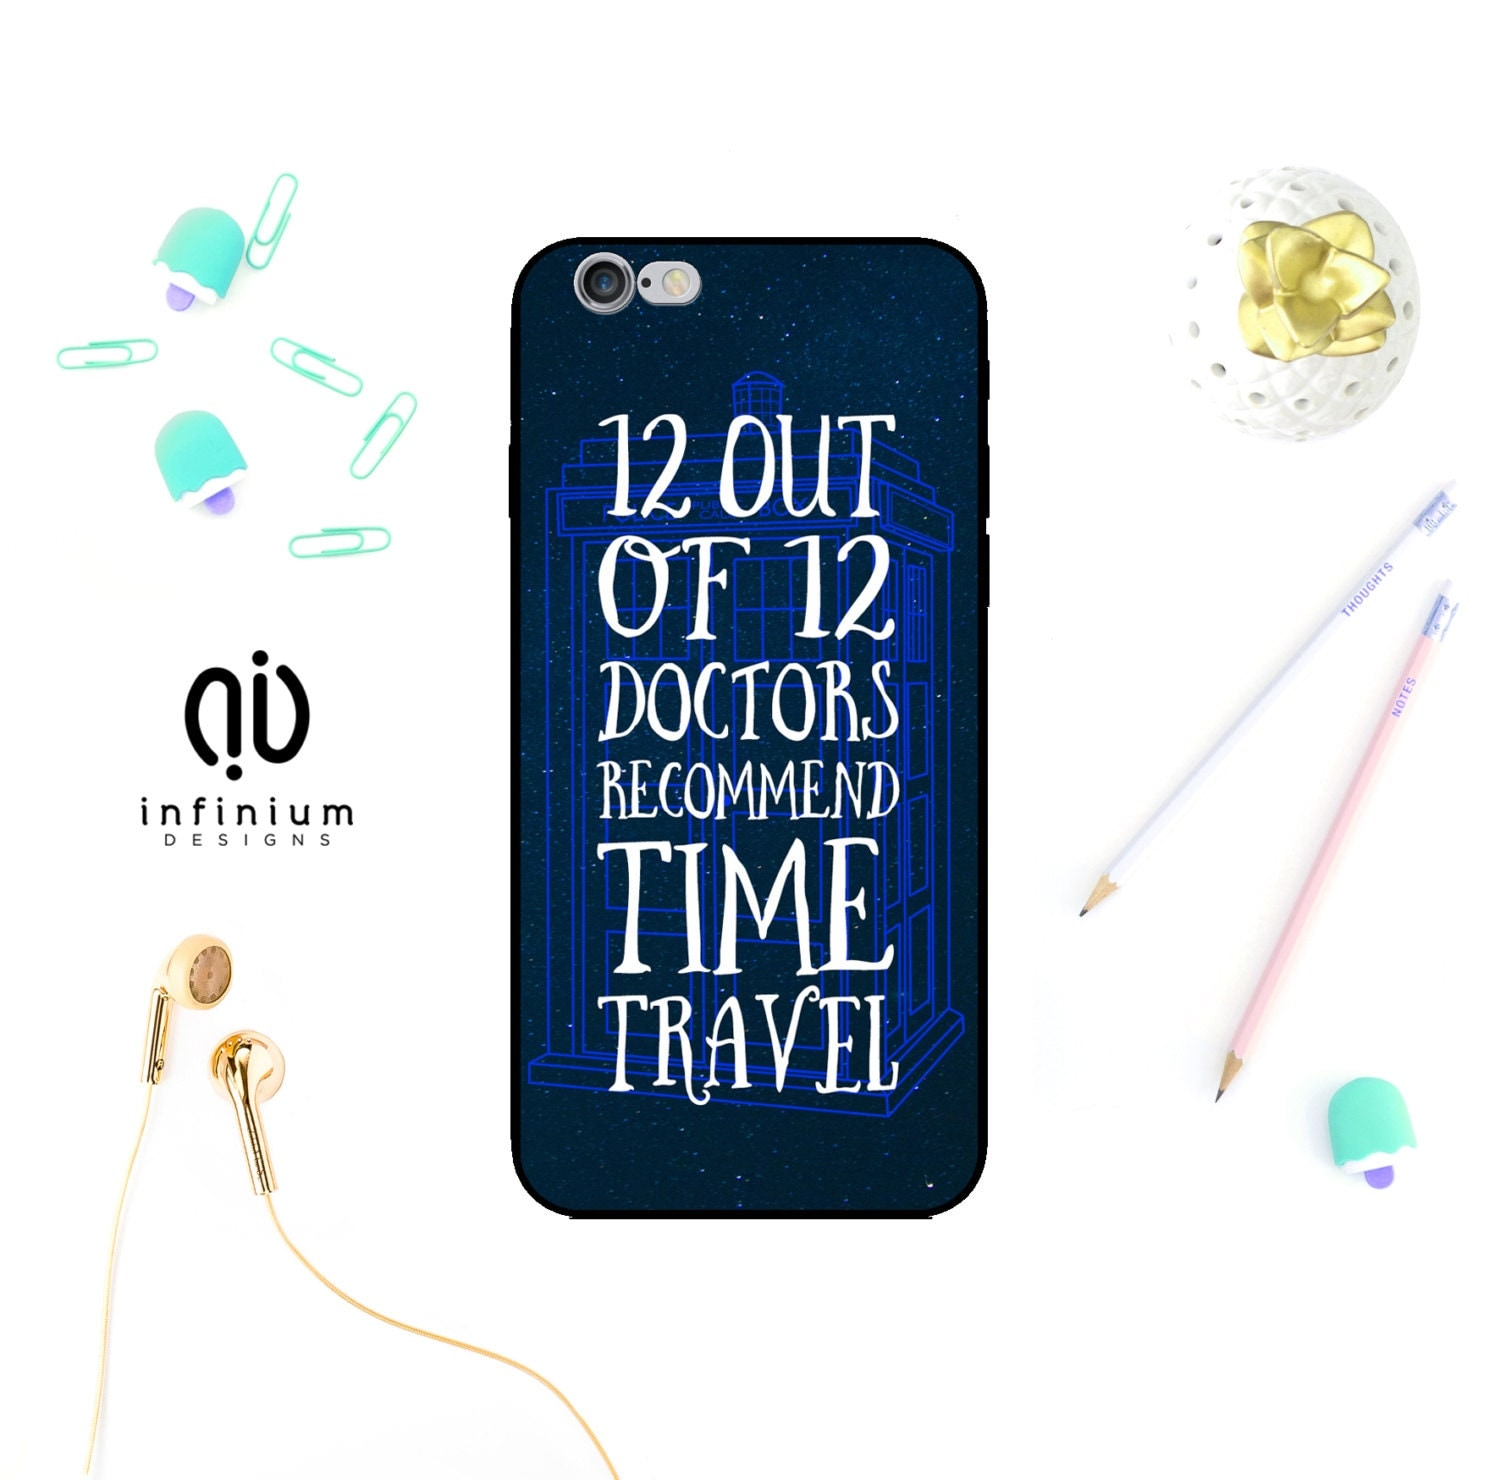 Twelve Doctors Case For iPhone 7 Samsung S8 S8 Edge S7 S7 Edge Core Prime A5 A3 Galaxy J3 J5 7 Plus iPhone 6S SE 5S  Touch 6